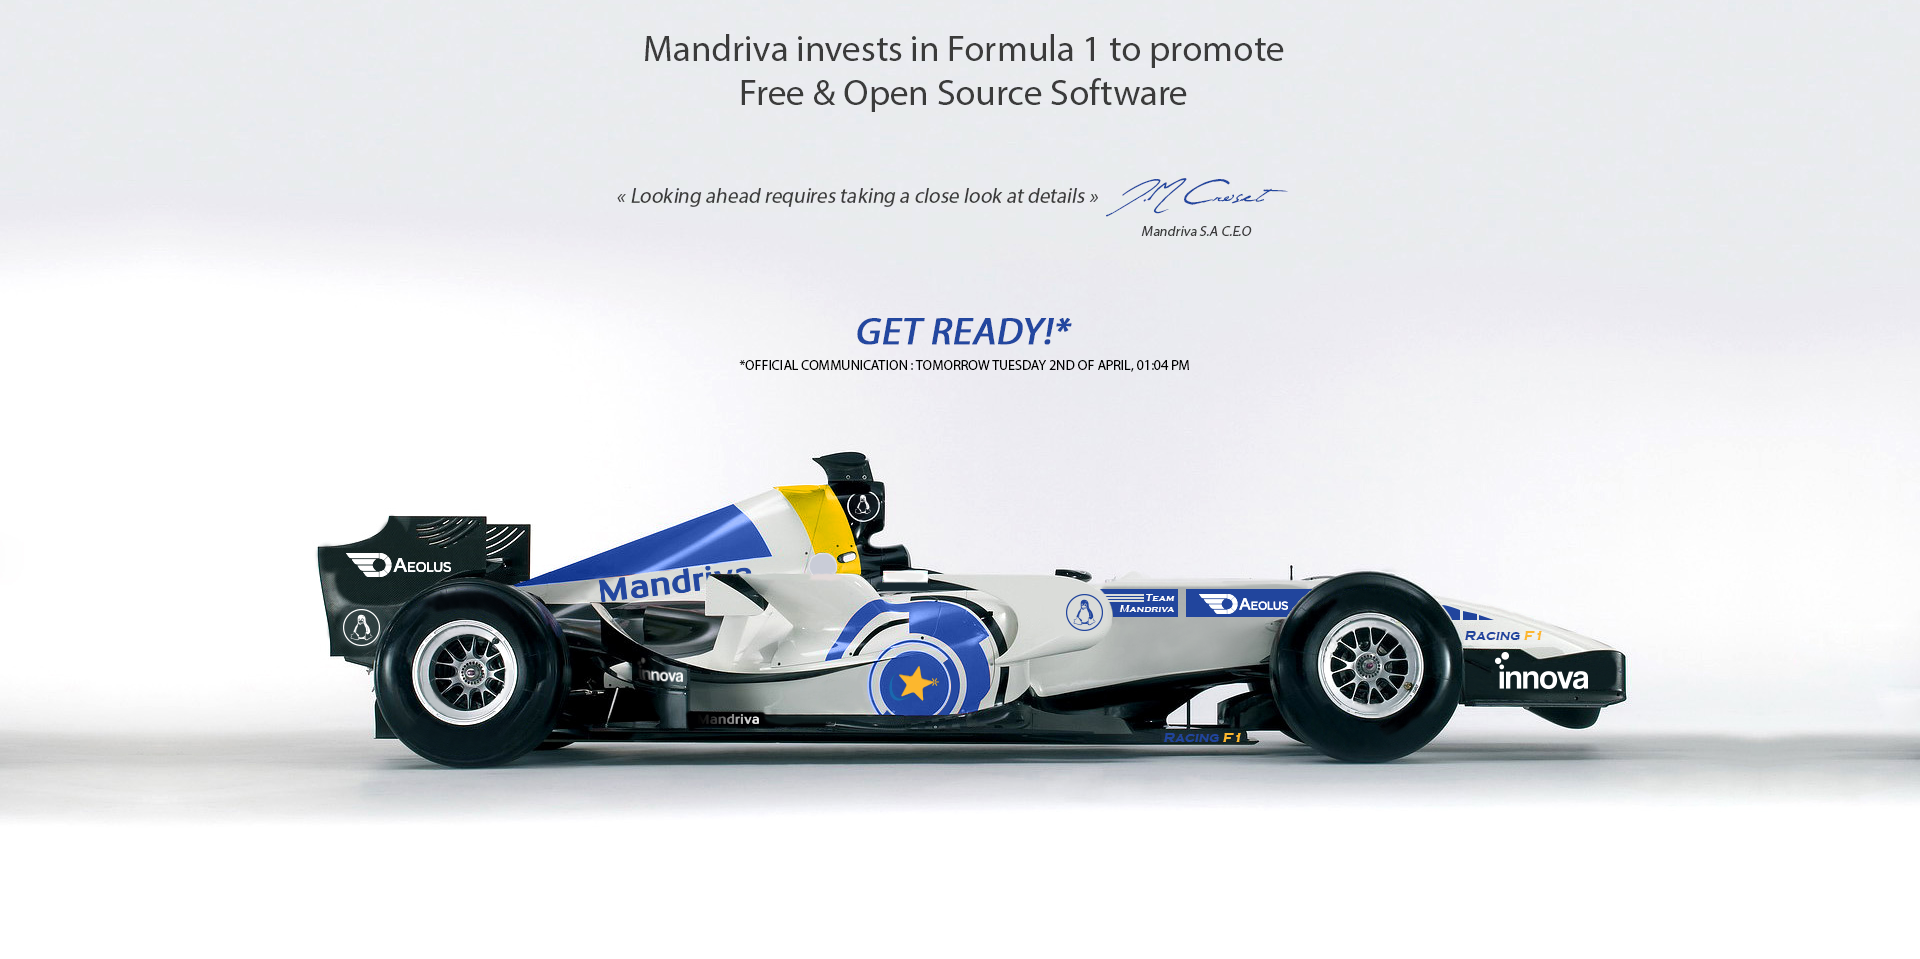 Special Announcement: Mandriva invests in Formula 1 racing